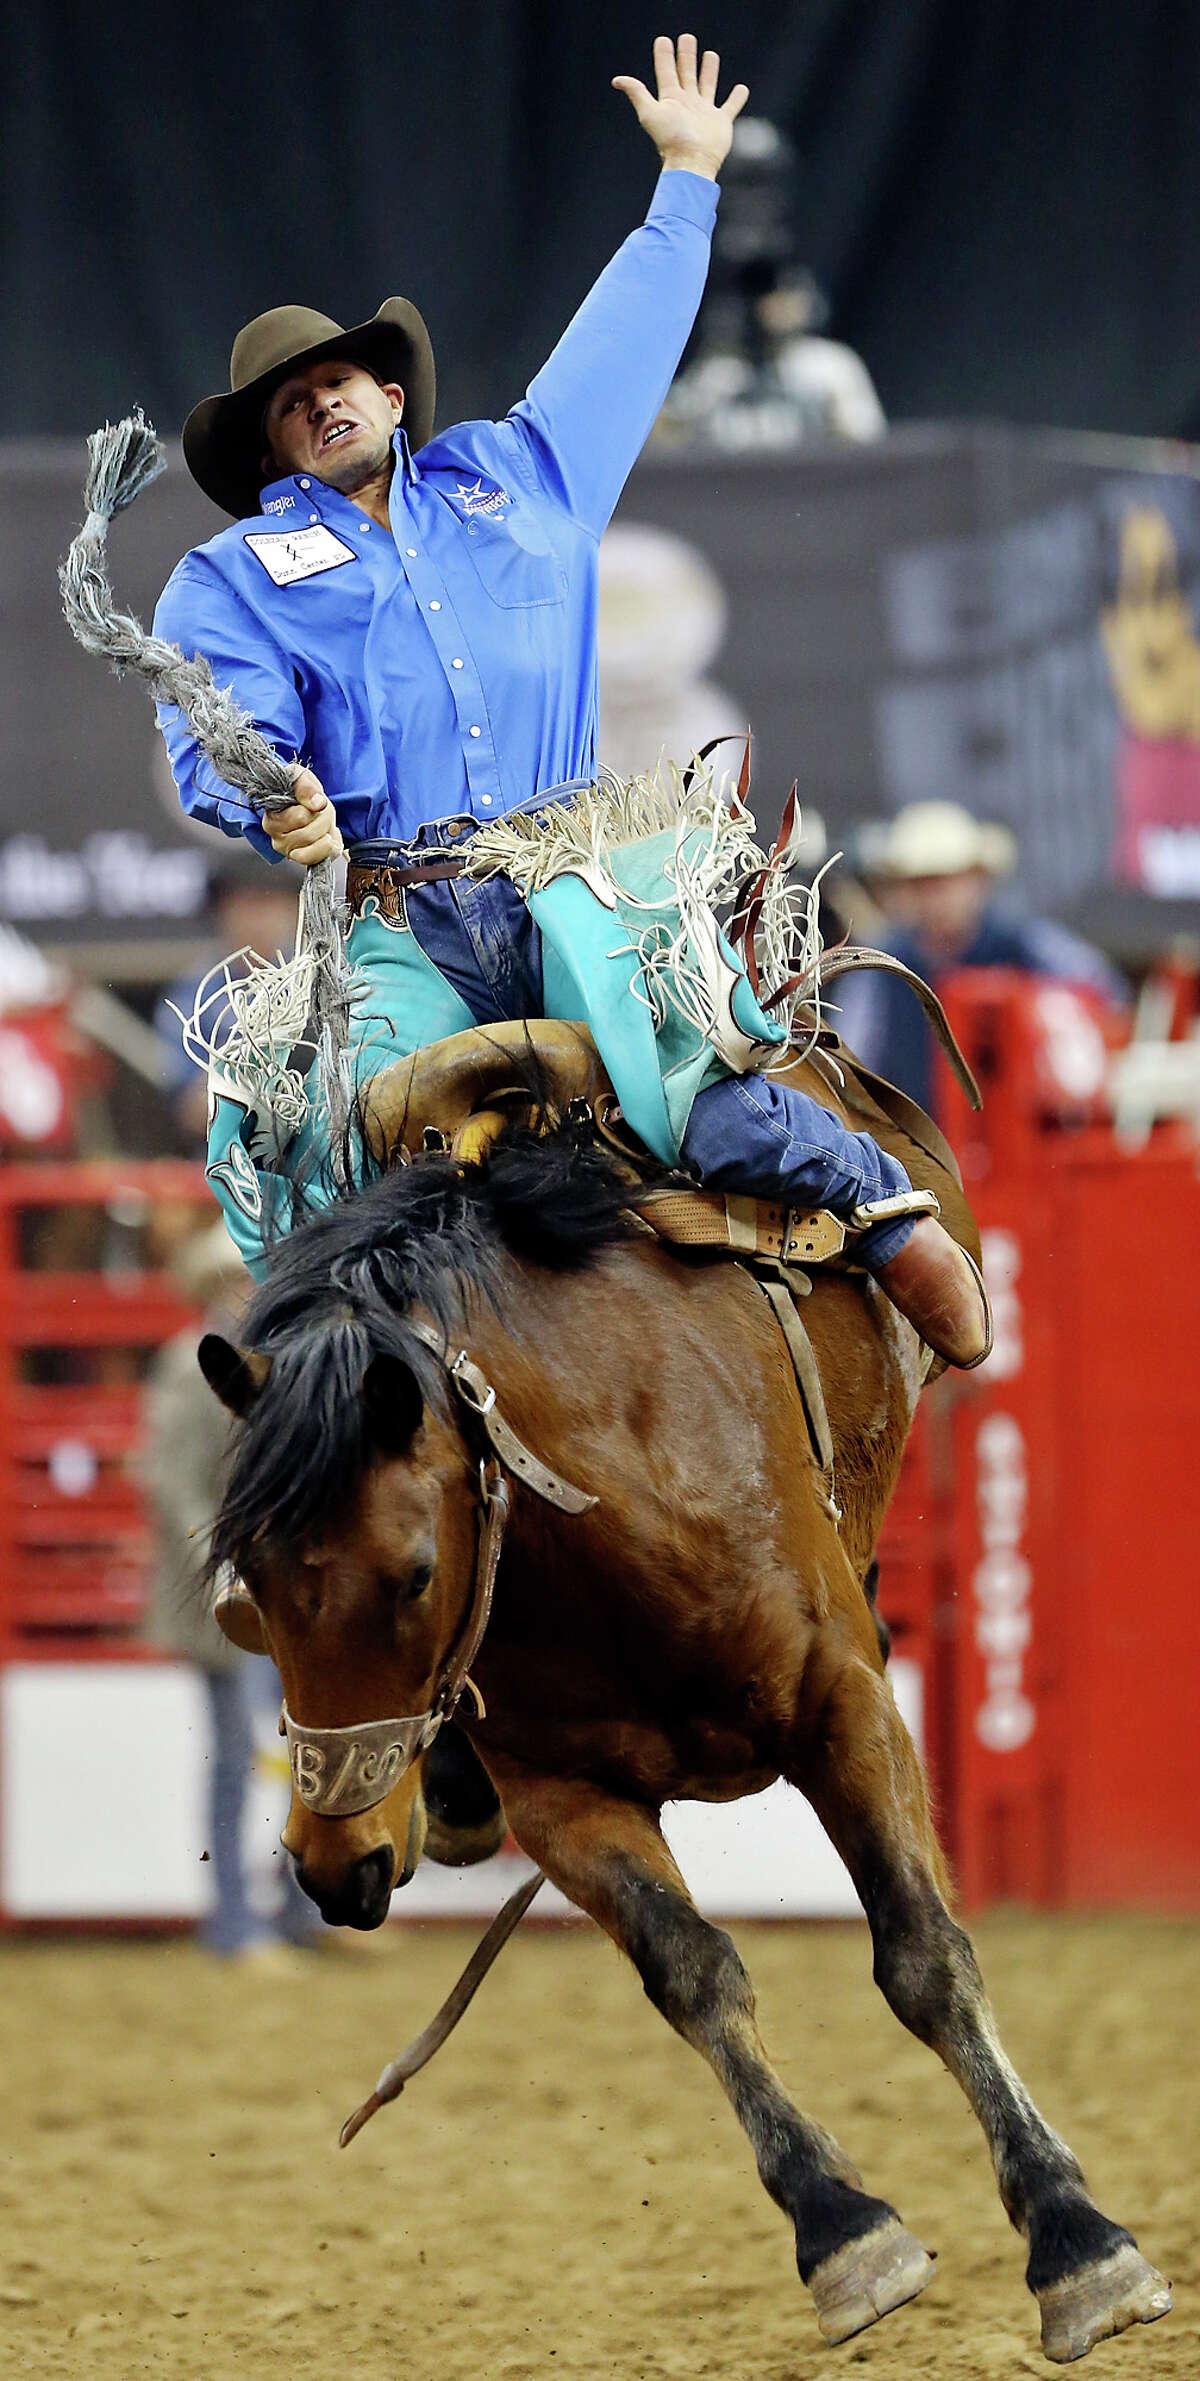 Isaac Diaz, of Desdemona, TX, competes in the saddle bronc riding event during the San Antonio Stock Show & Rodeo Friday Feb. 8, 2013 at the AT&T Center. Diaz scored 78 on the ride.